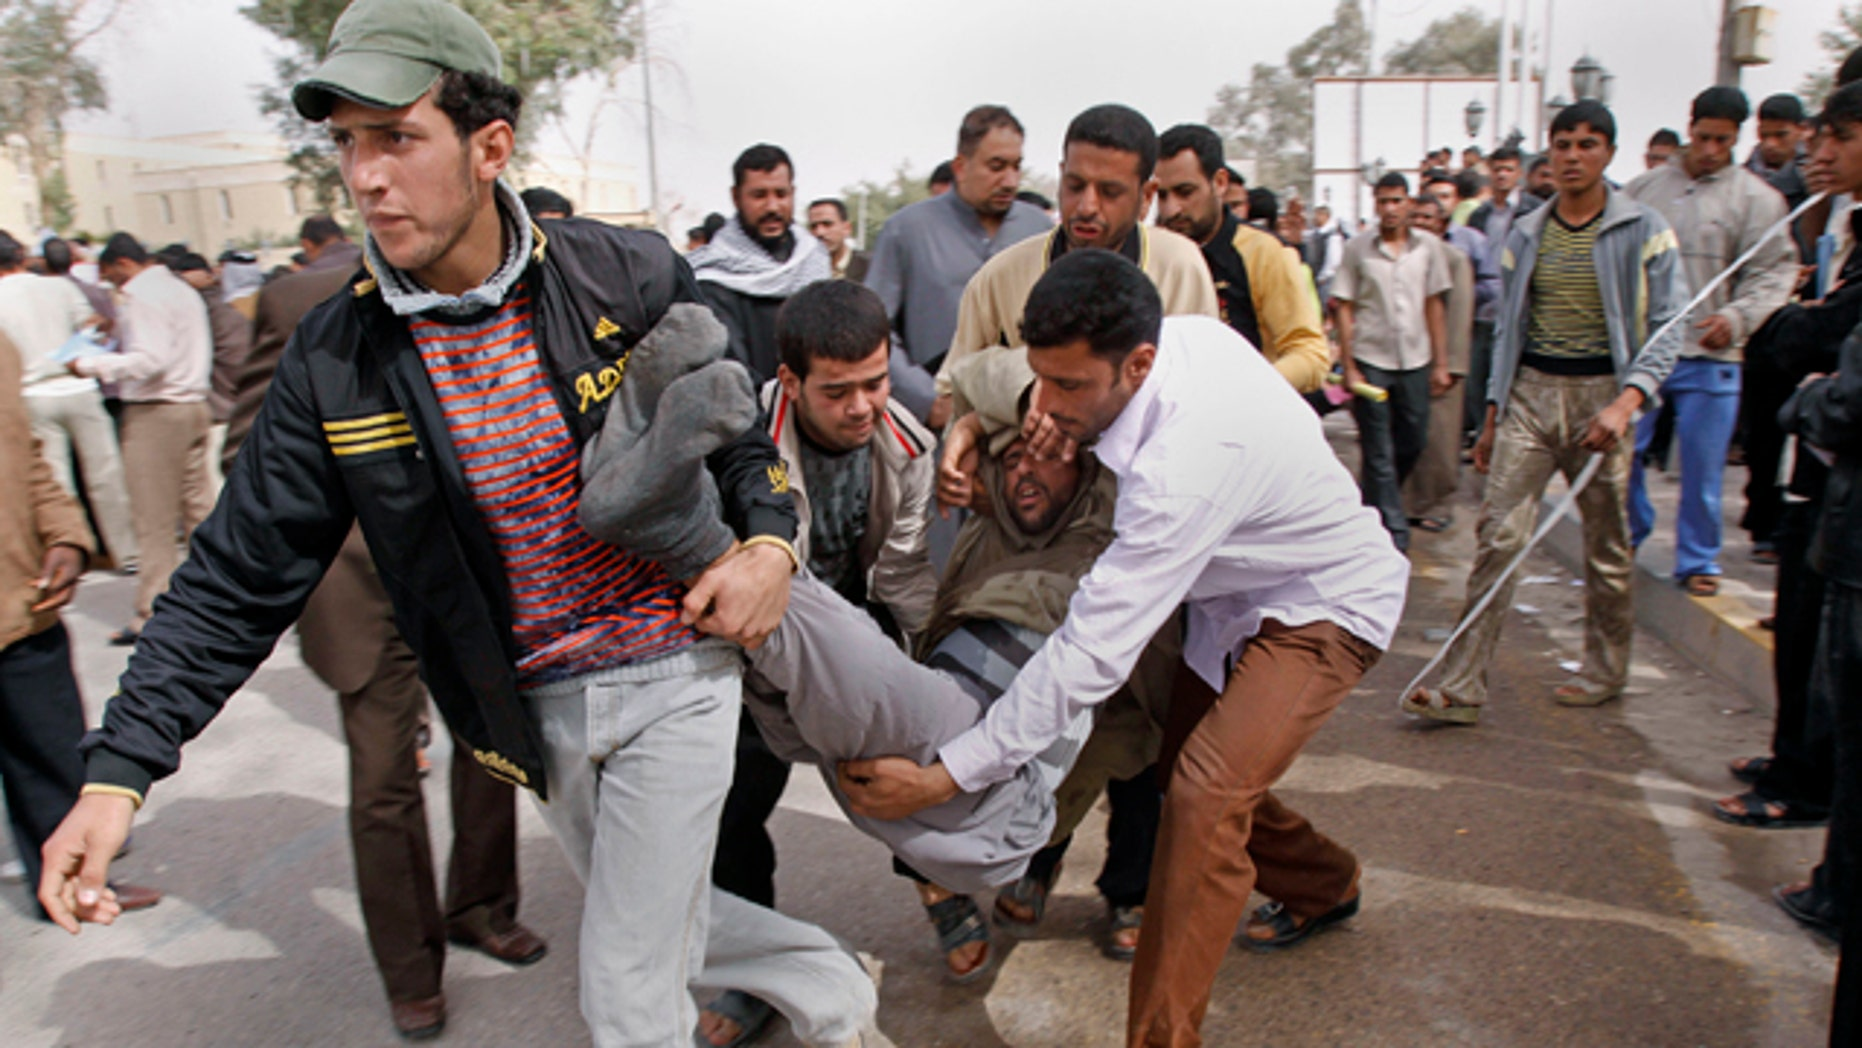 Iraqi anti-government protesters carry a man who collapsed during a demonstration in Basra, Iraq's second-largest city, 550 kilometers (340 miles) southeast of Baghdad, Iraq, Thursday, Feb. 17, 2011. Hundreds of Iraqi demonstrators massed Thursday in the southern city of Basra to demand the local governor's ouster while protesters elsewhere stormed a local government building, the latest examples of the anger sweeping the country over poor government services and high unemployment. (AP Photo/Nabil al-Jurani)